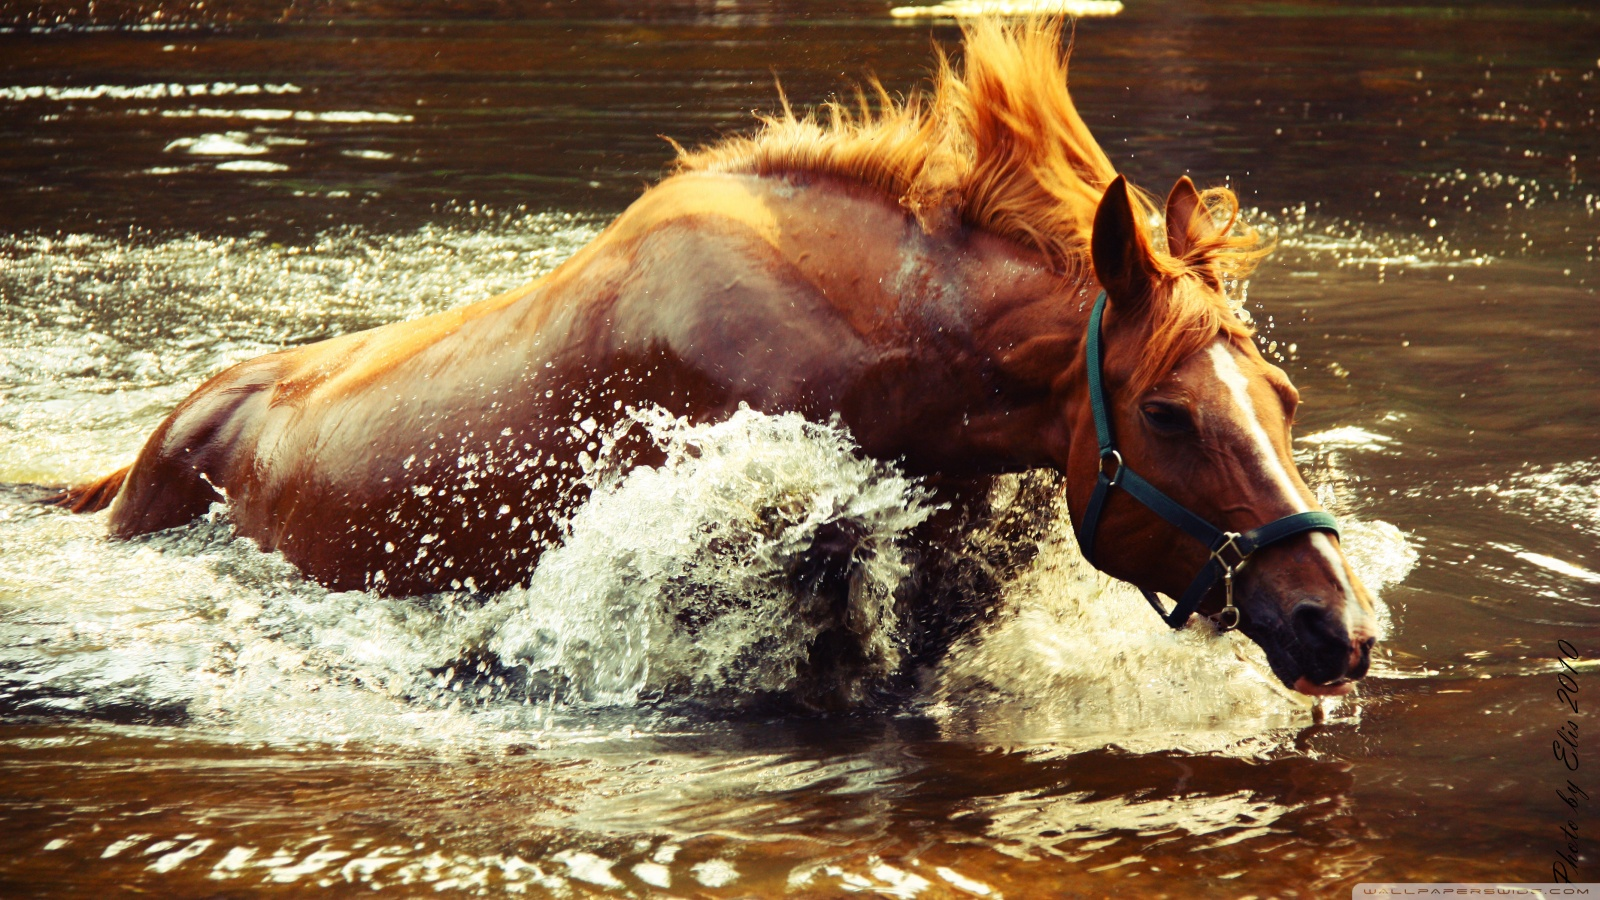 Horses HD Wallpapers Great Horses | Animal Photo